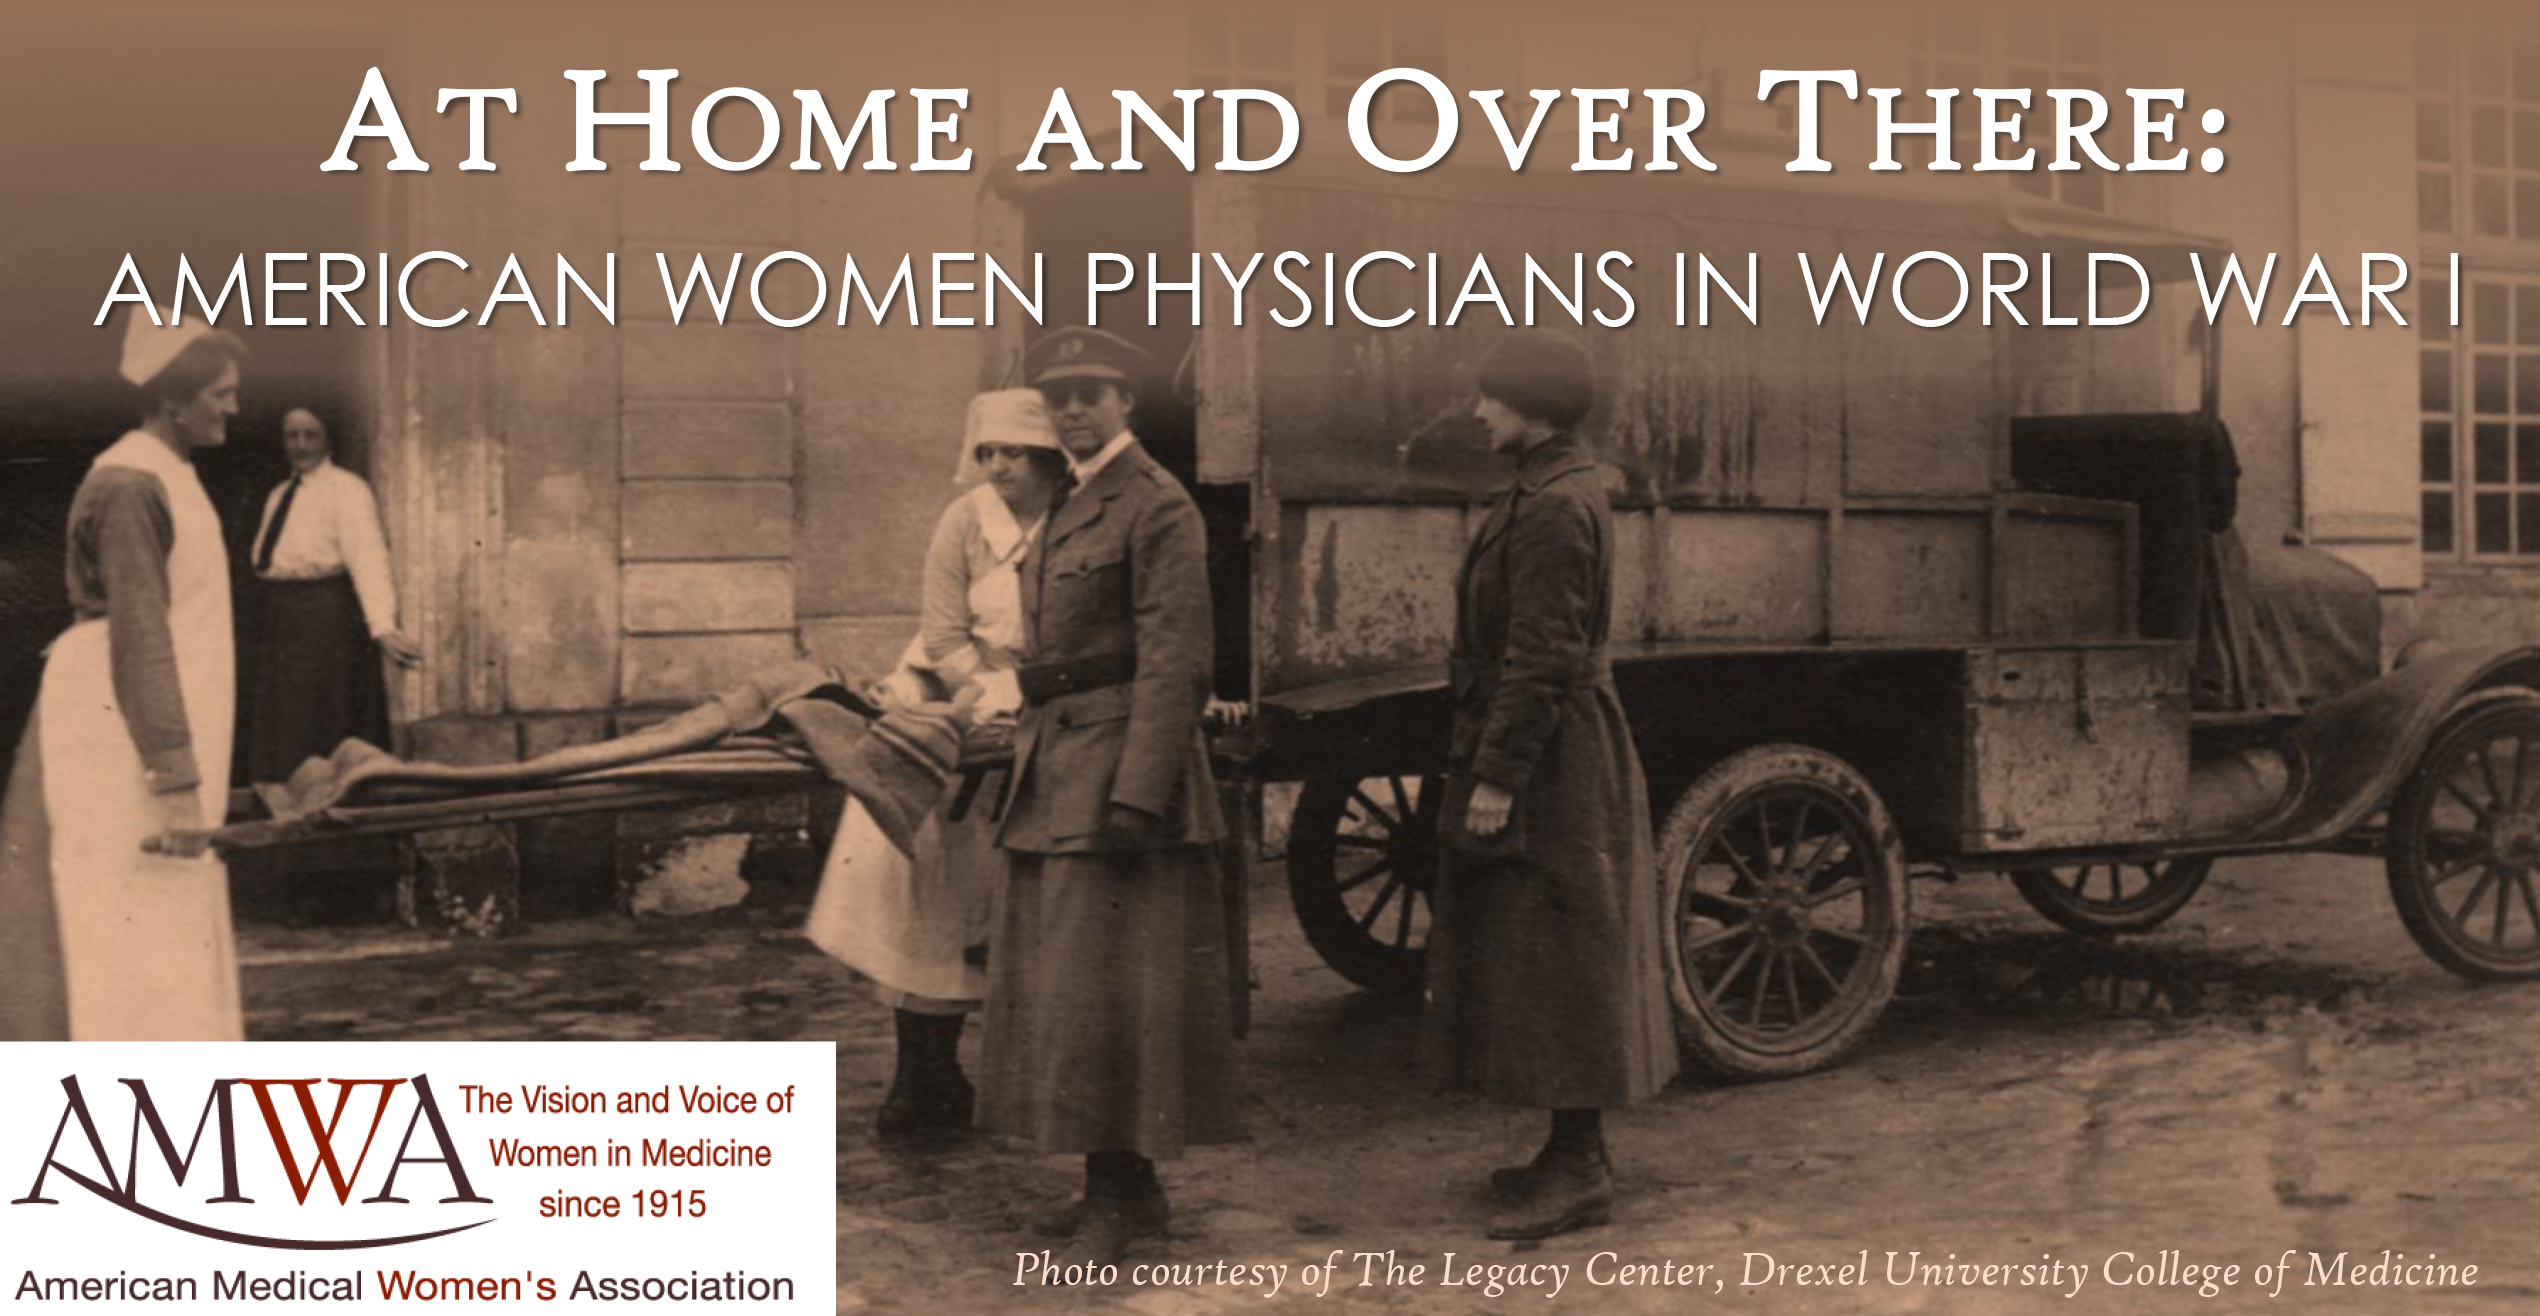 At Home and Over There: American Women Physicians in World War I